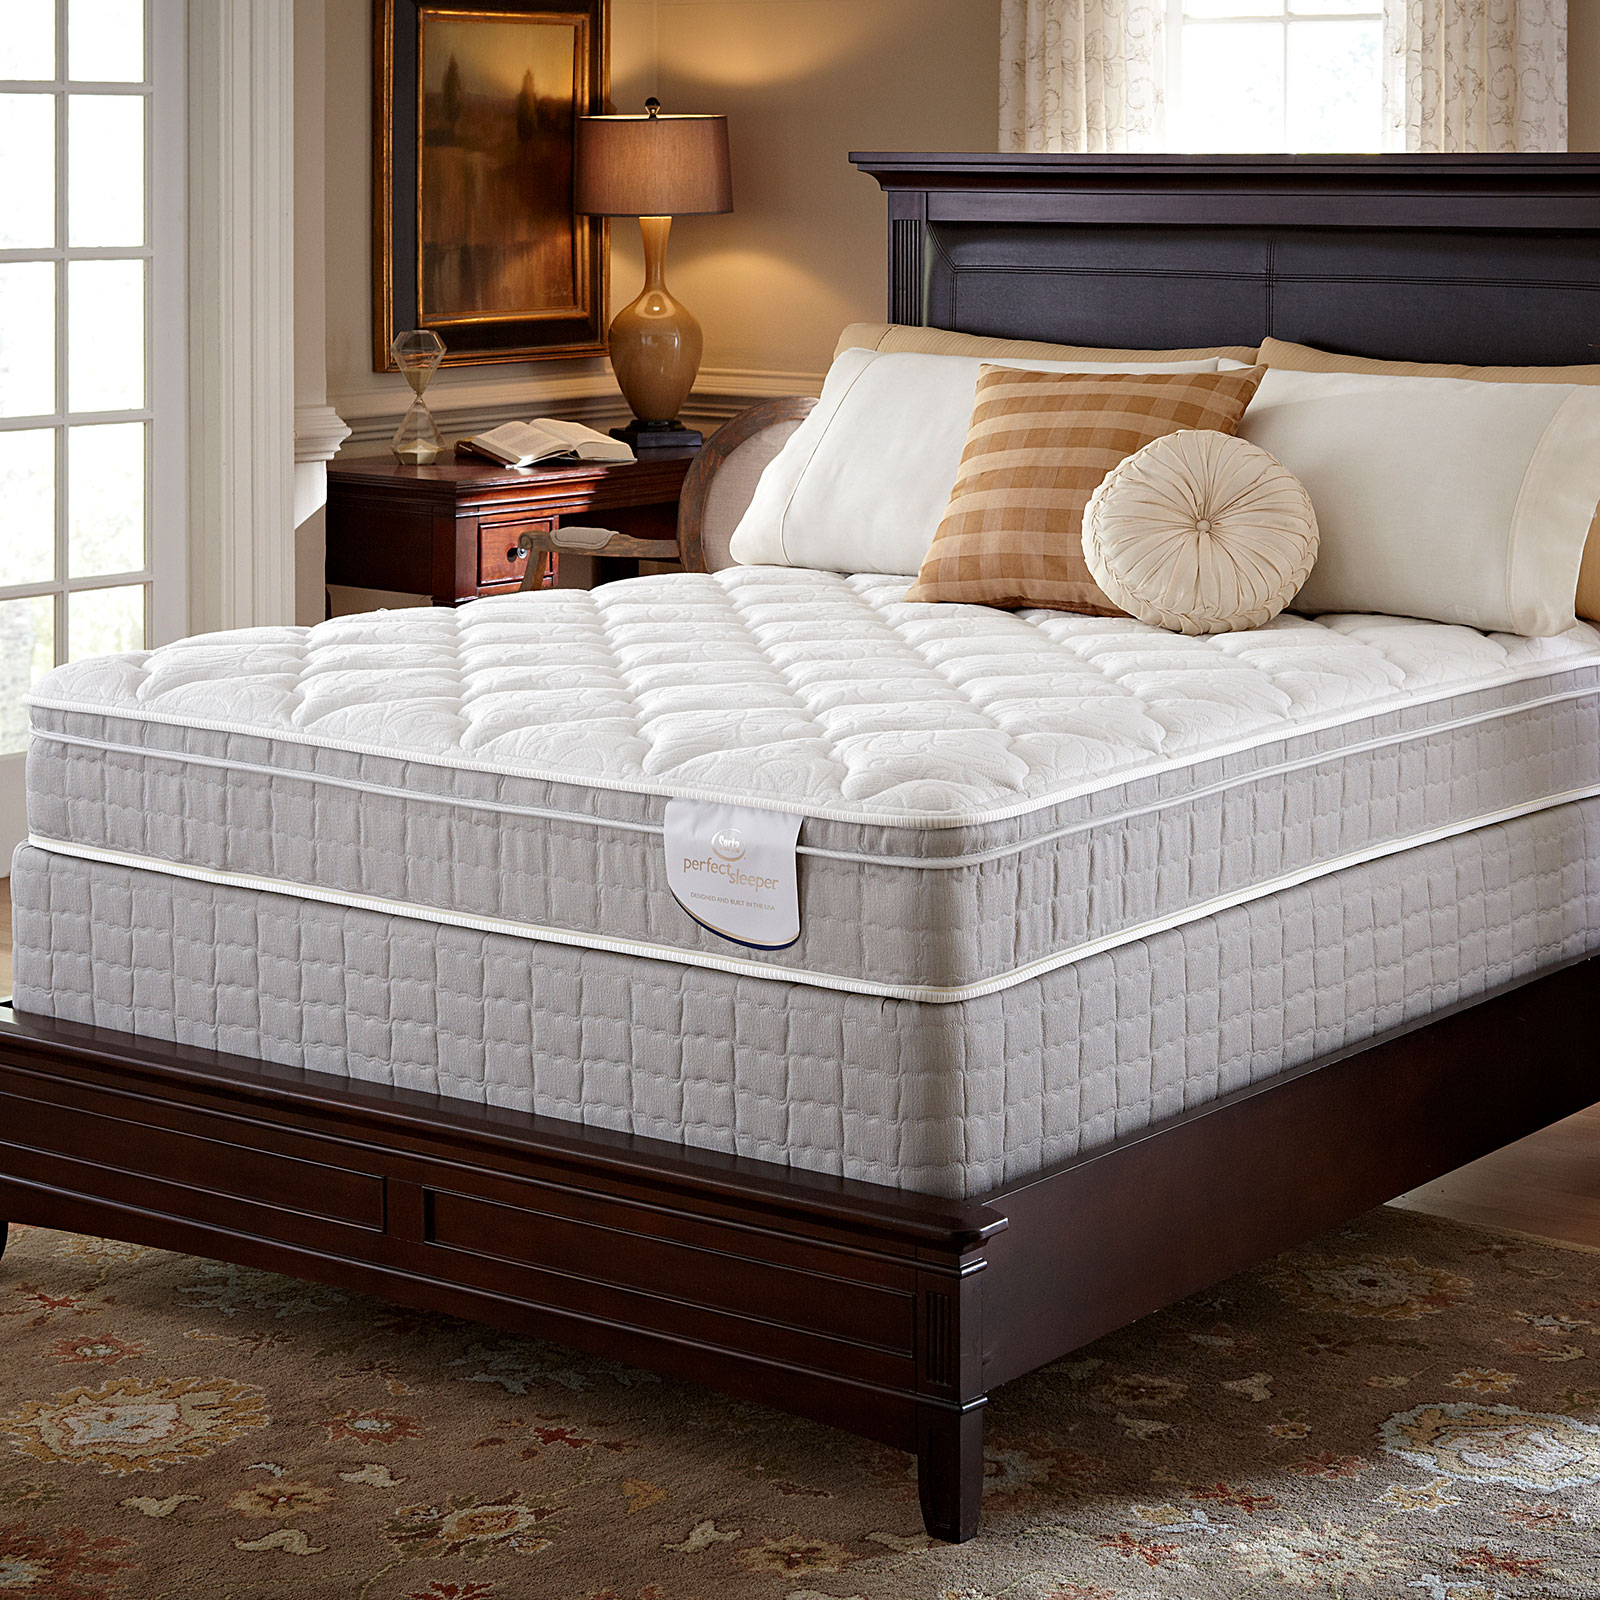 Serta Careybrook II Eurotop California King Mattress